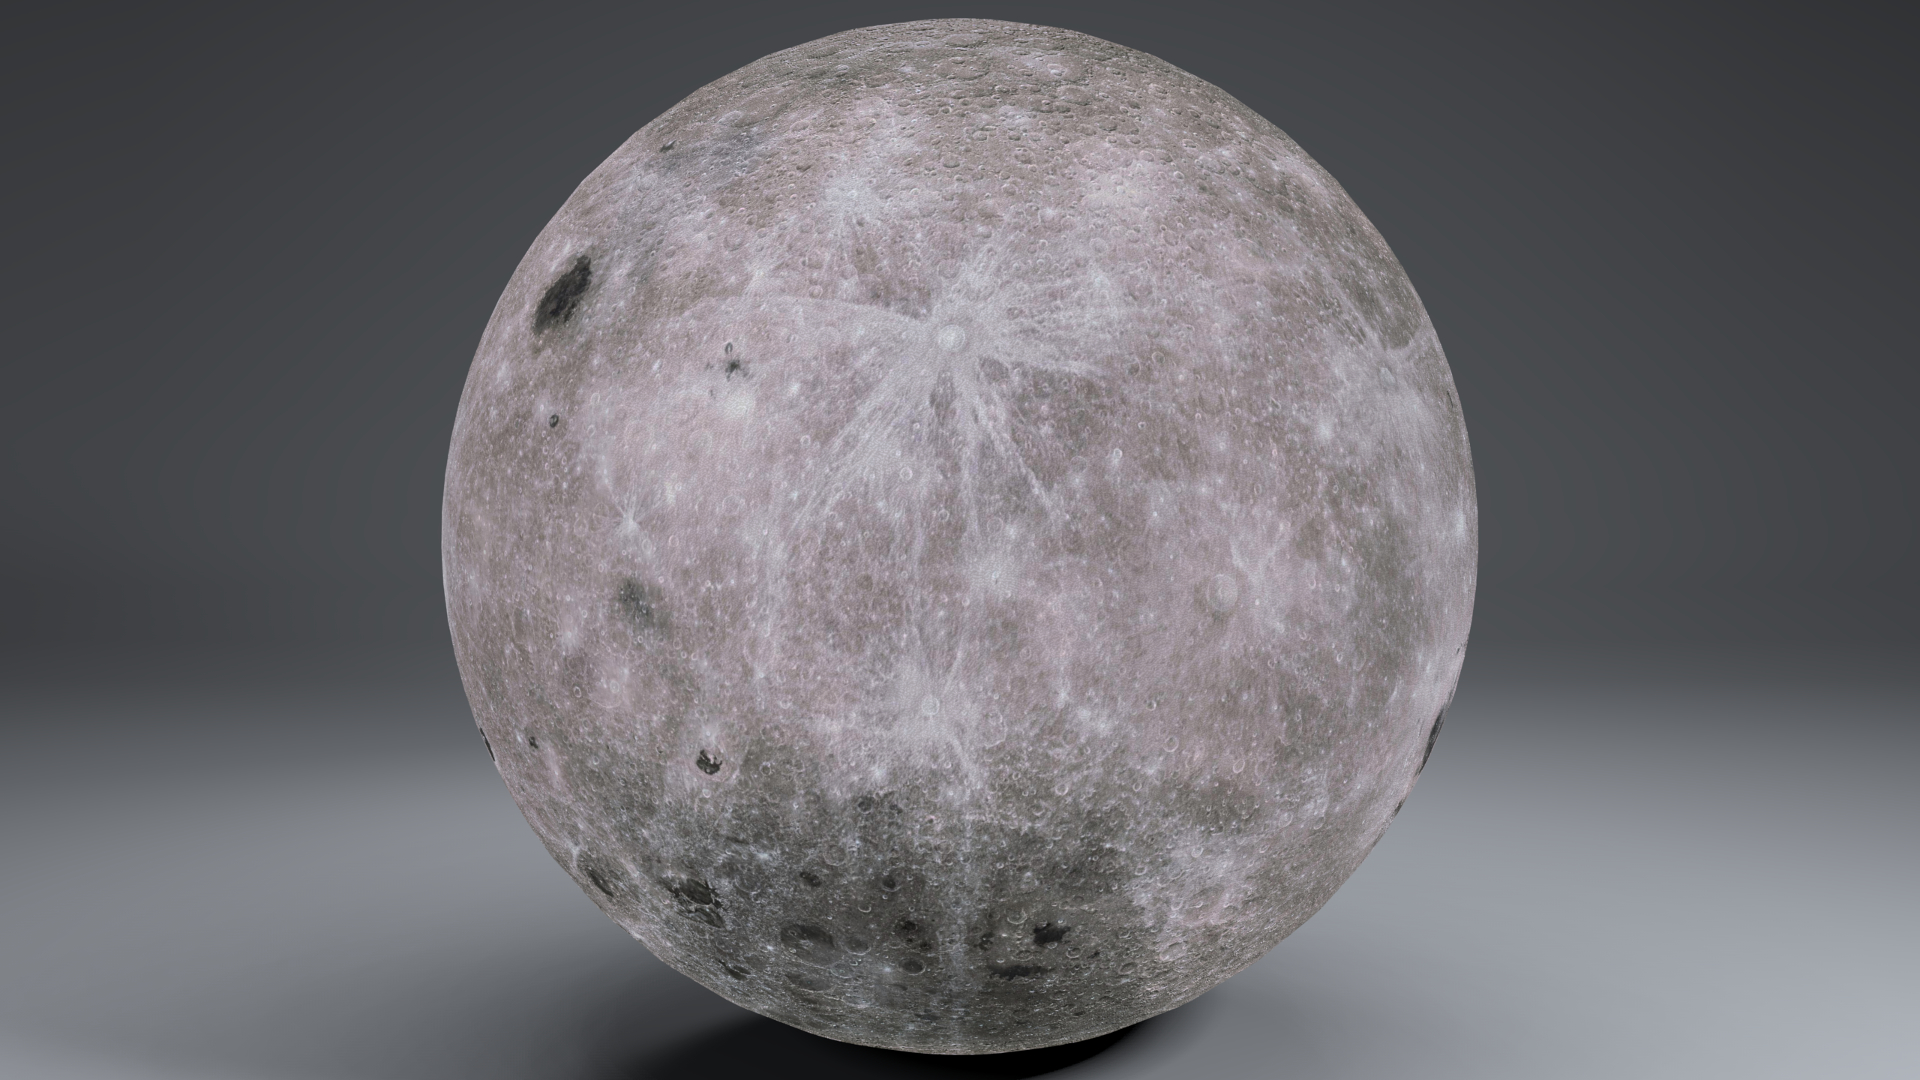 moonglobe 8k 3d model 3ds fbx blend dae obj 221870